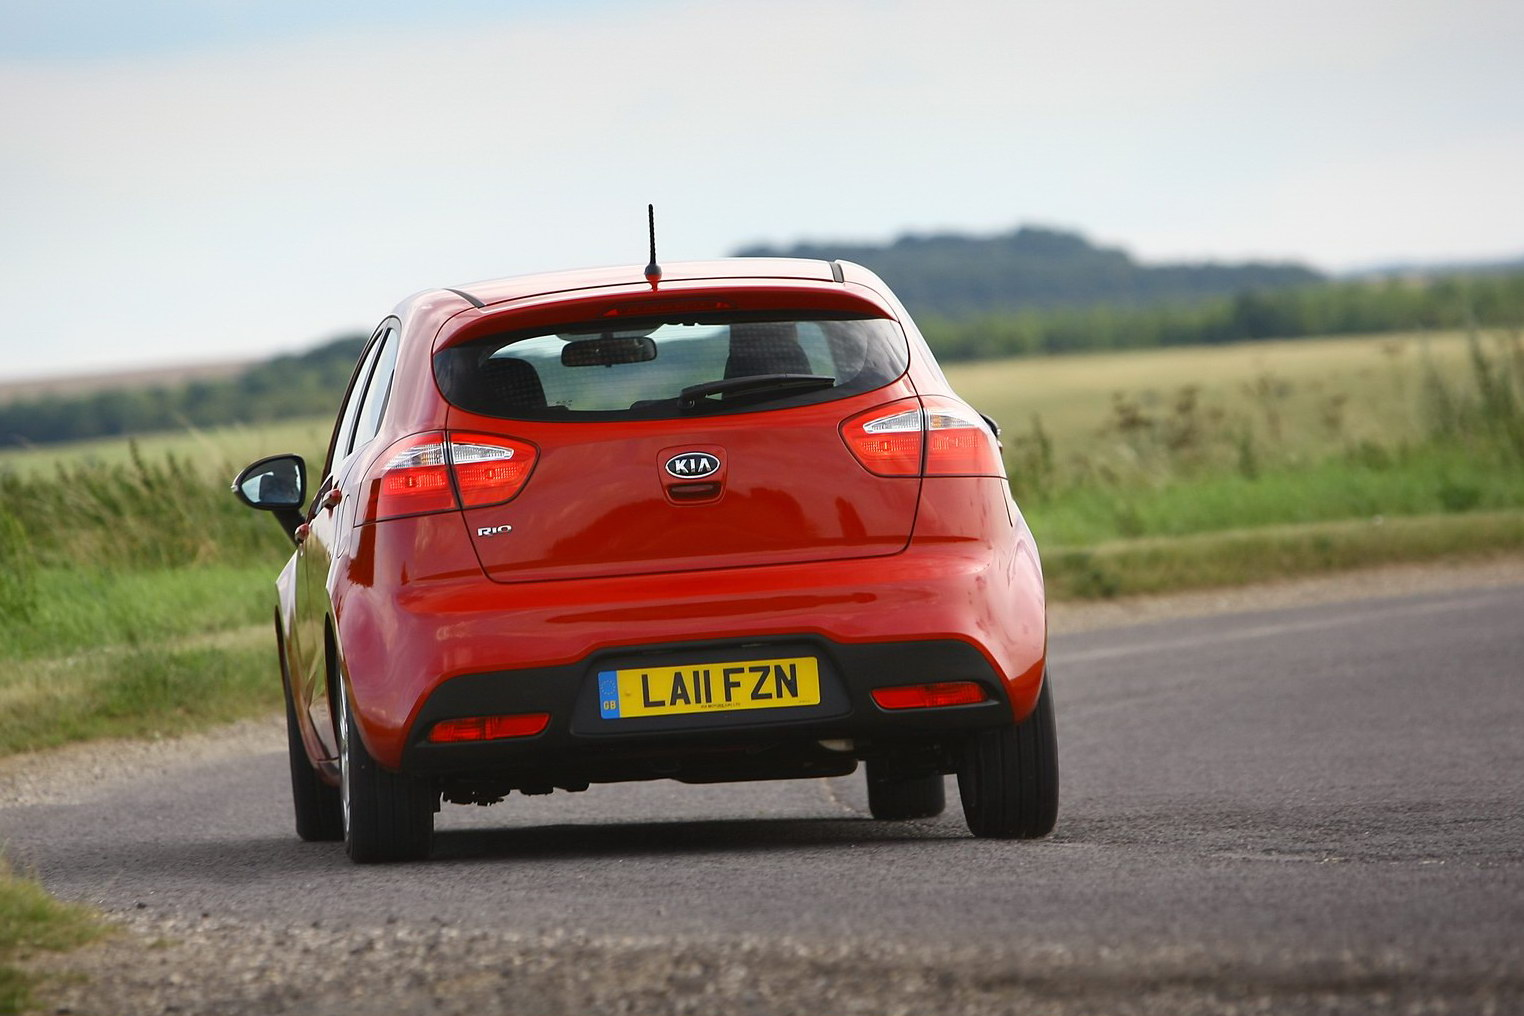 2012 Kia Rio UK 16 UK: The new Kia Rio starting at £10,595.